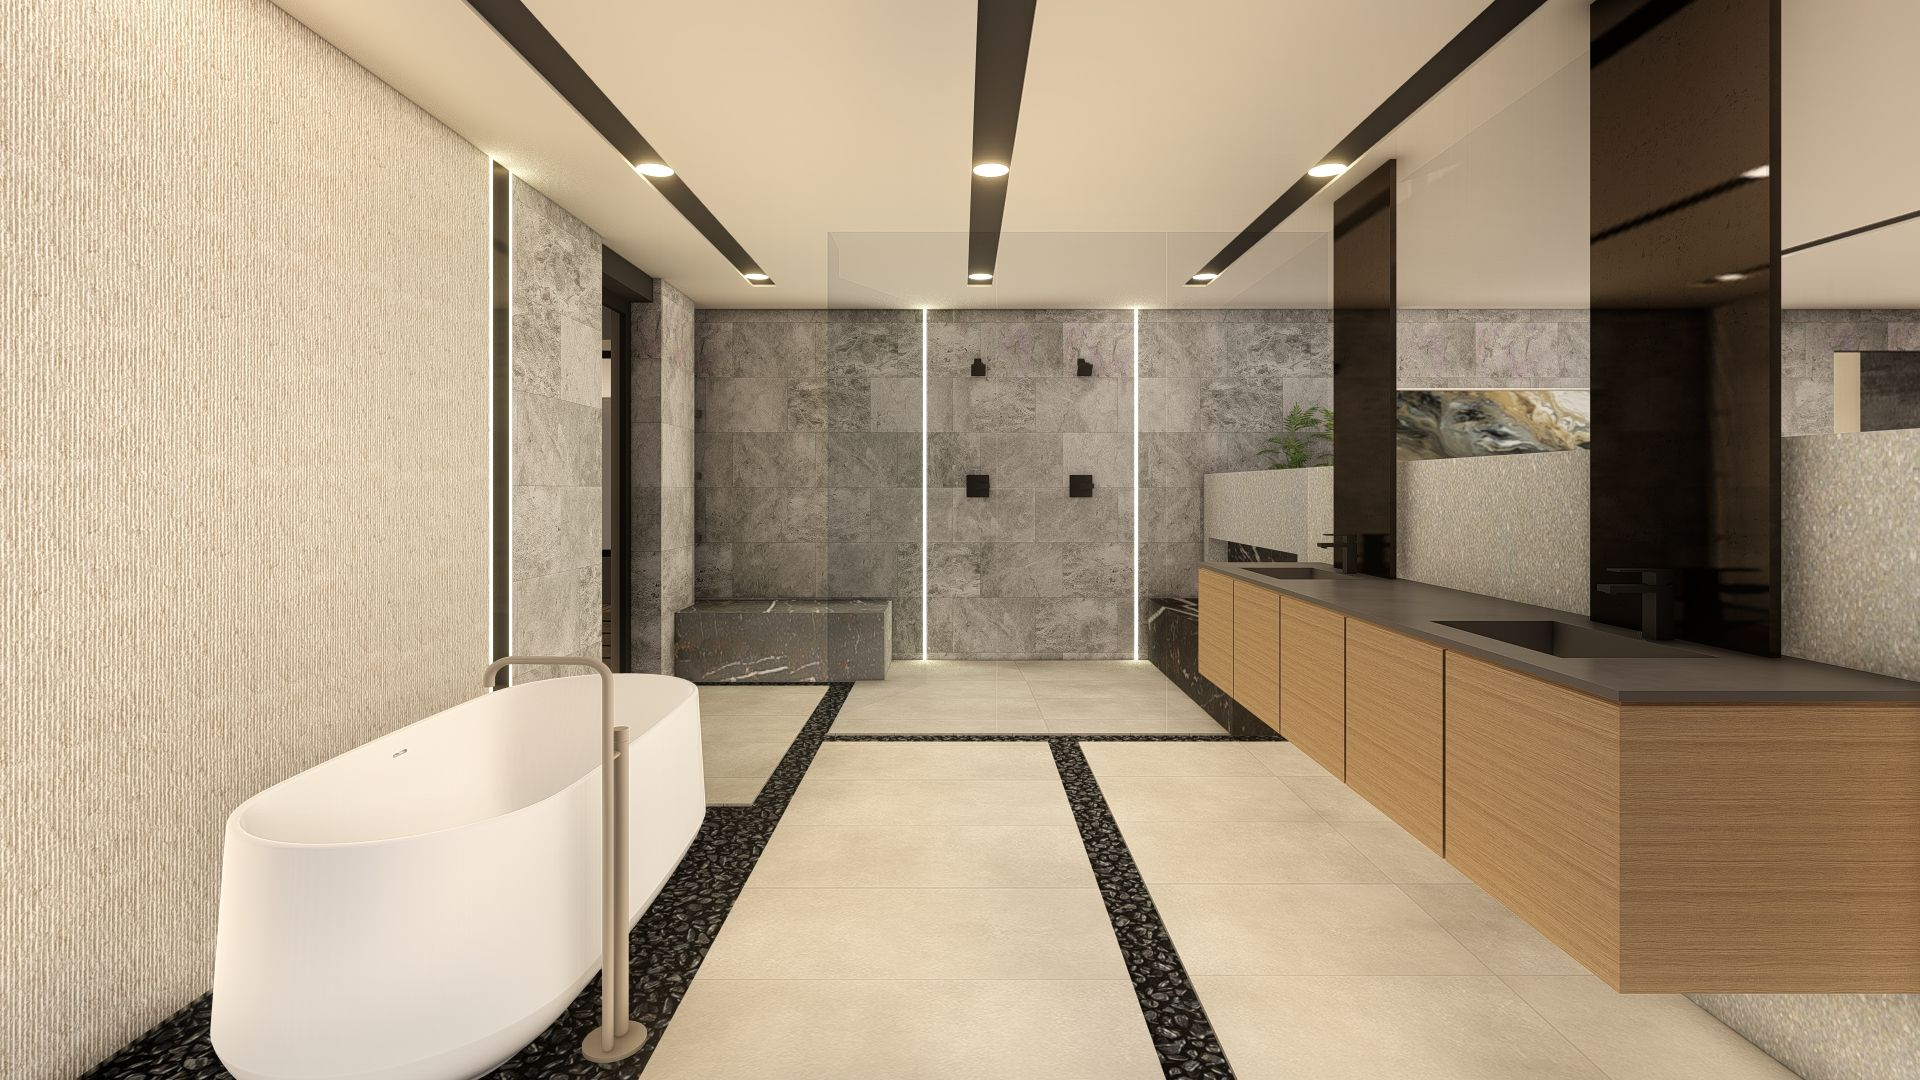 Bathroom featured in the Zenith By Blue Heron in Las Vegas, NV